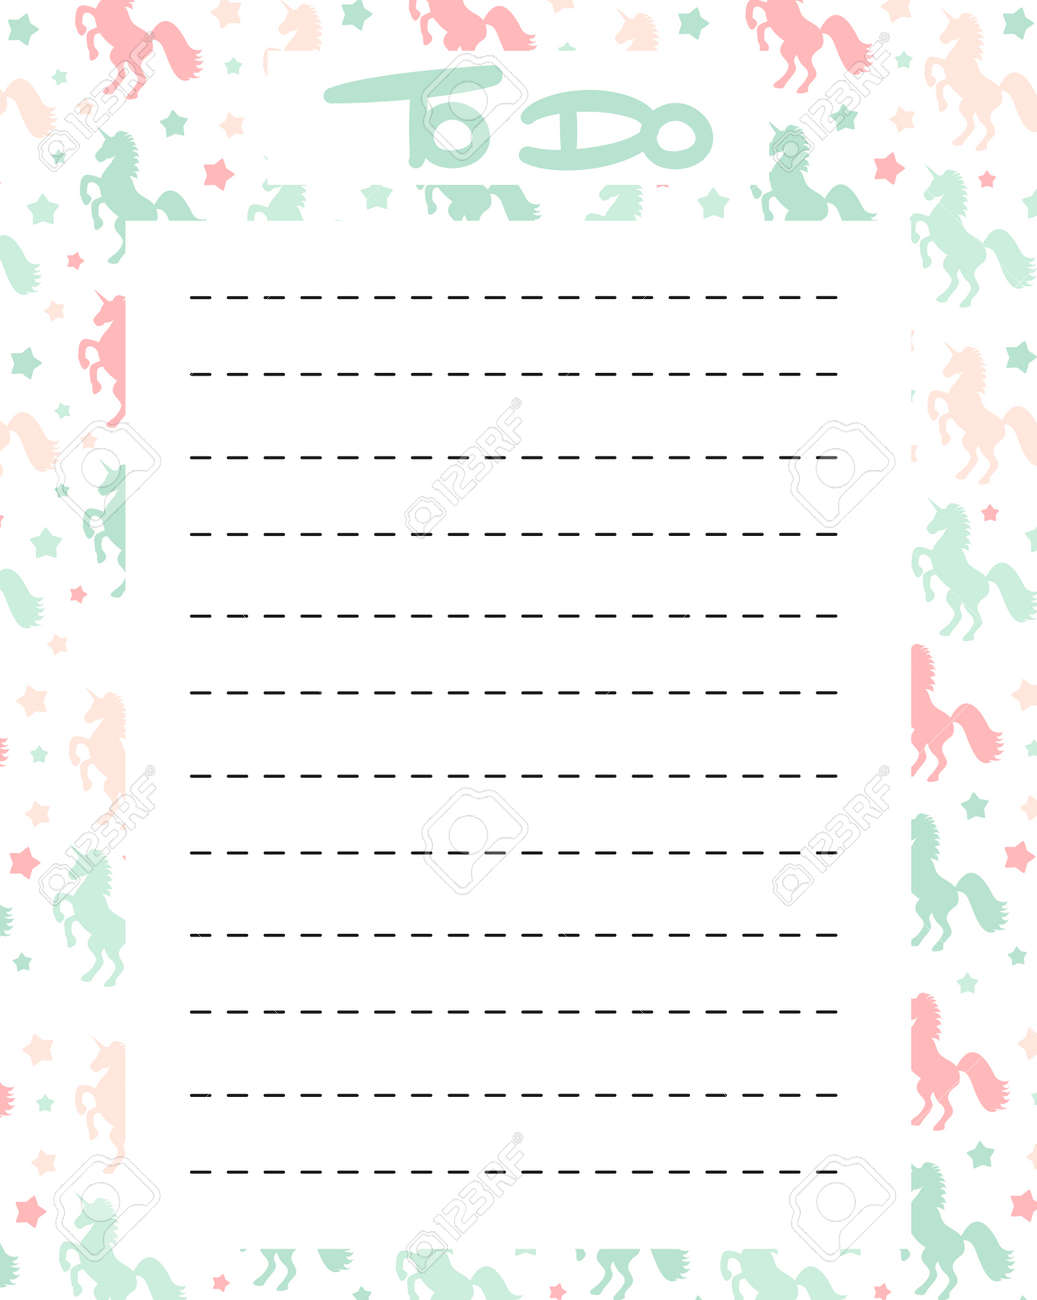 graphic relating to To Do List Printable Cute named adorable toward do checklist vector printable with vibrant unicorns